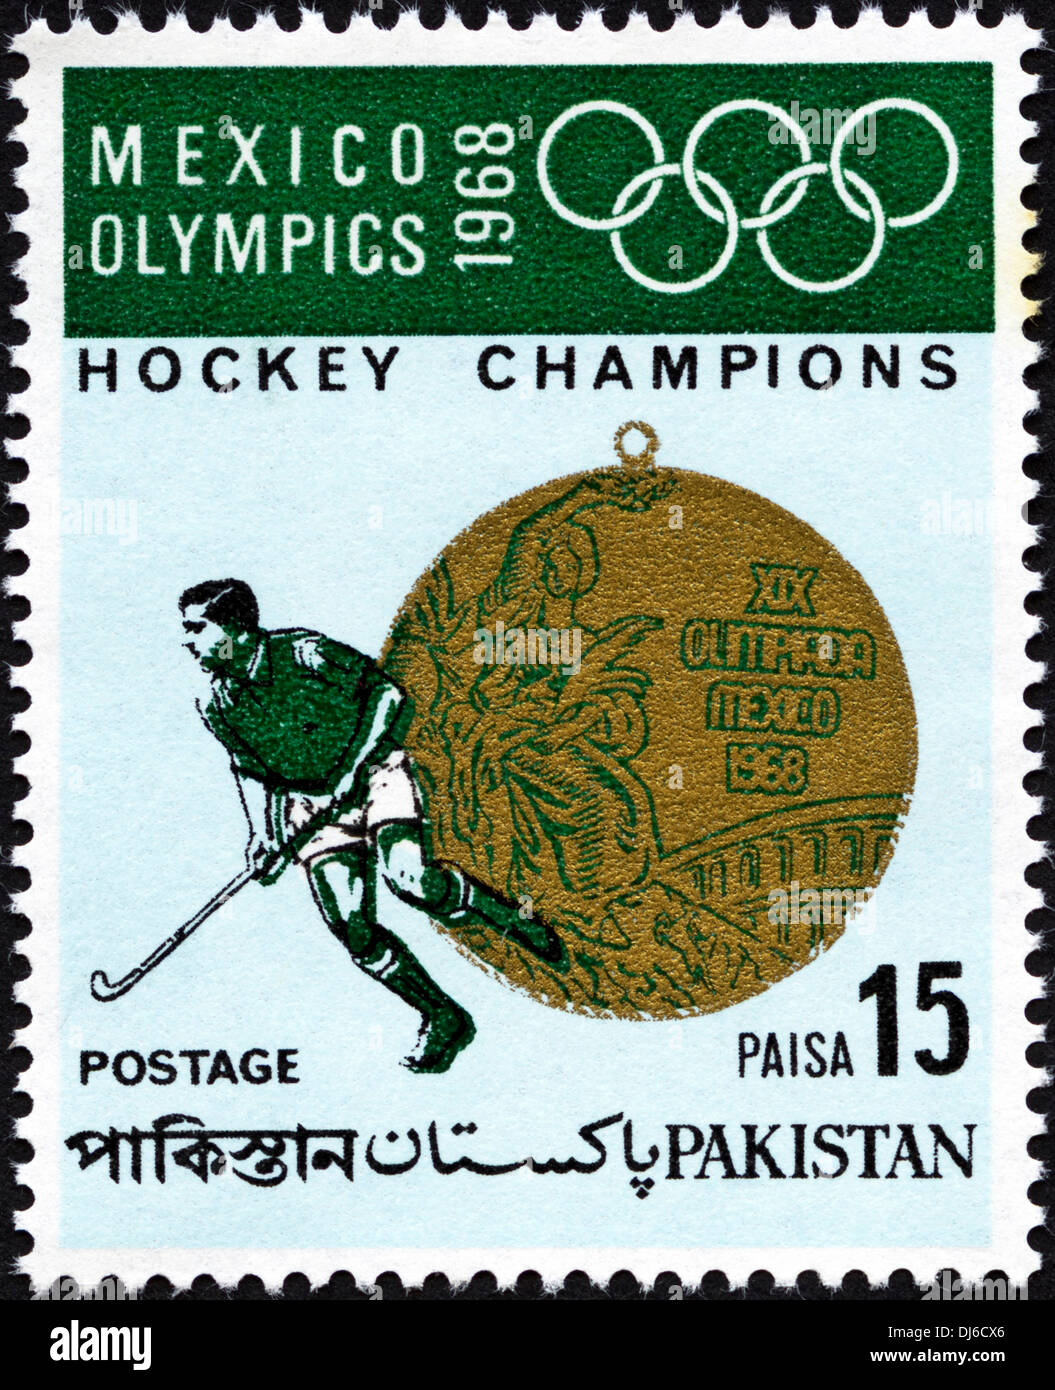 postage stamp Pakistan 15 Paisa featuring Mexico Olympics 1968 Hockey Champions issued 1969 - Stock Image